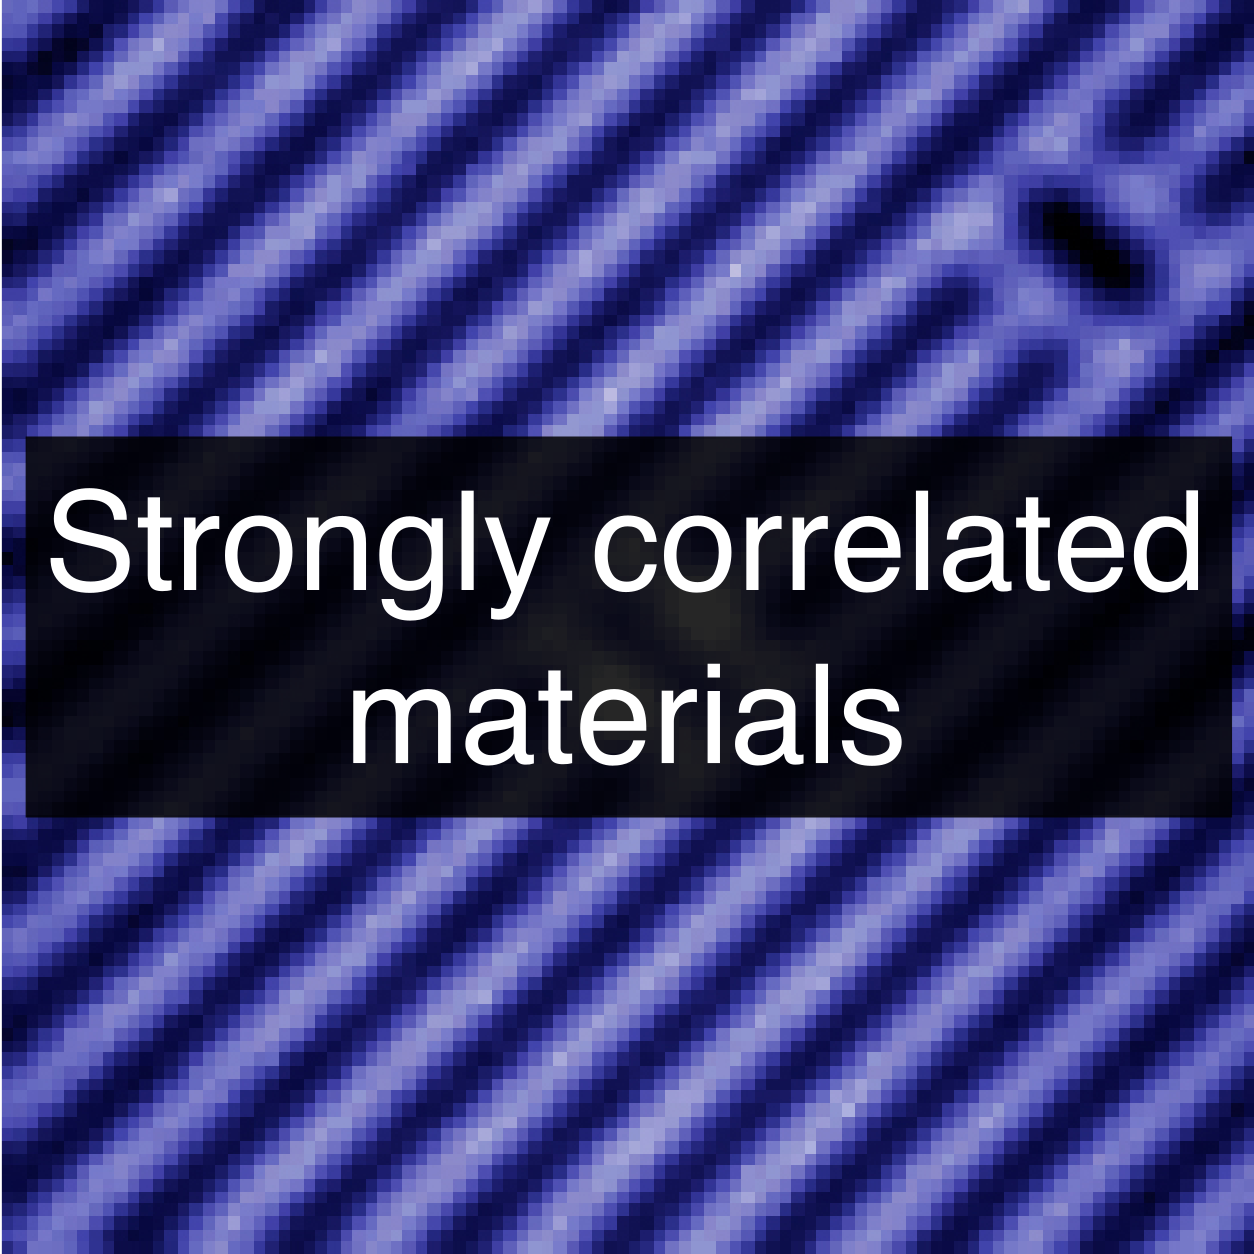 Strongly correlated electrons page link